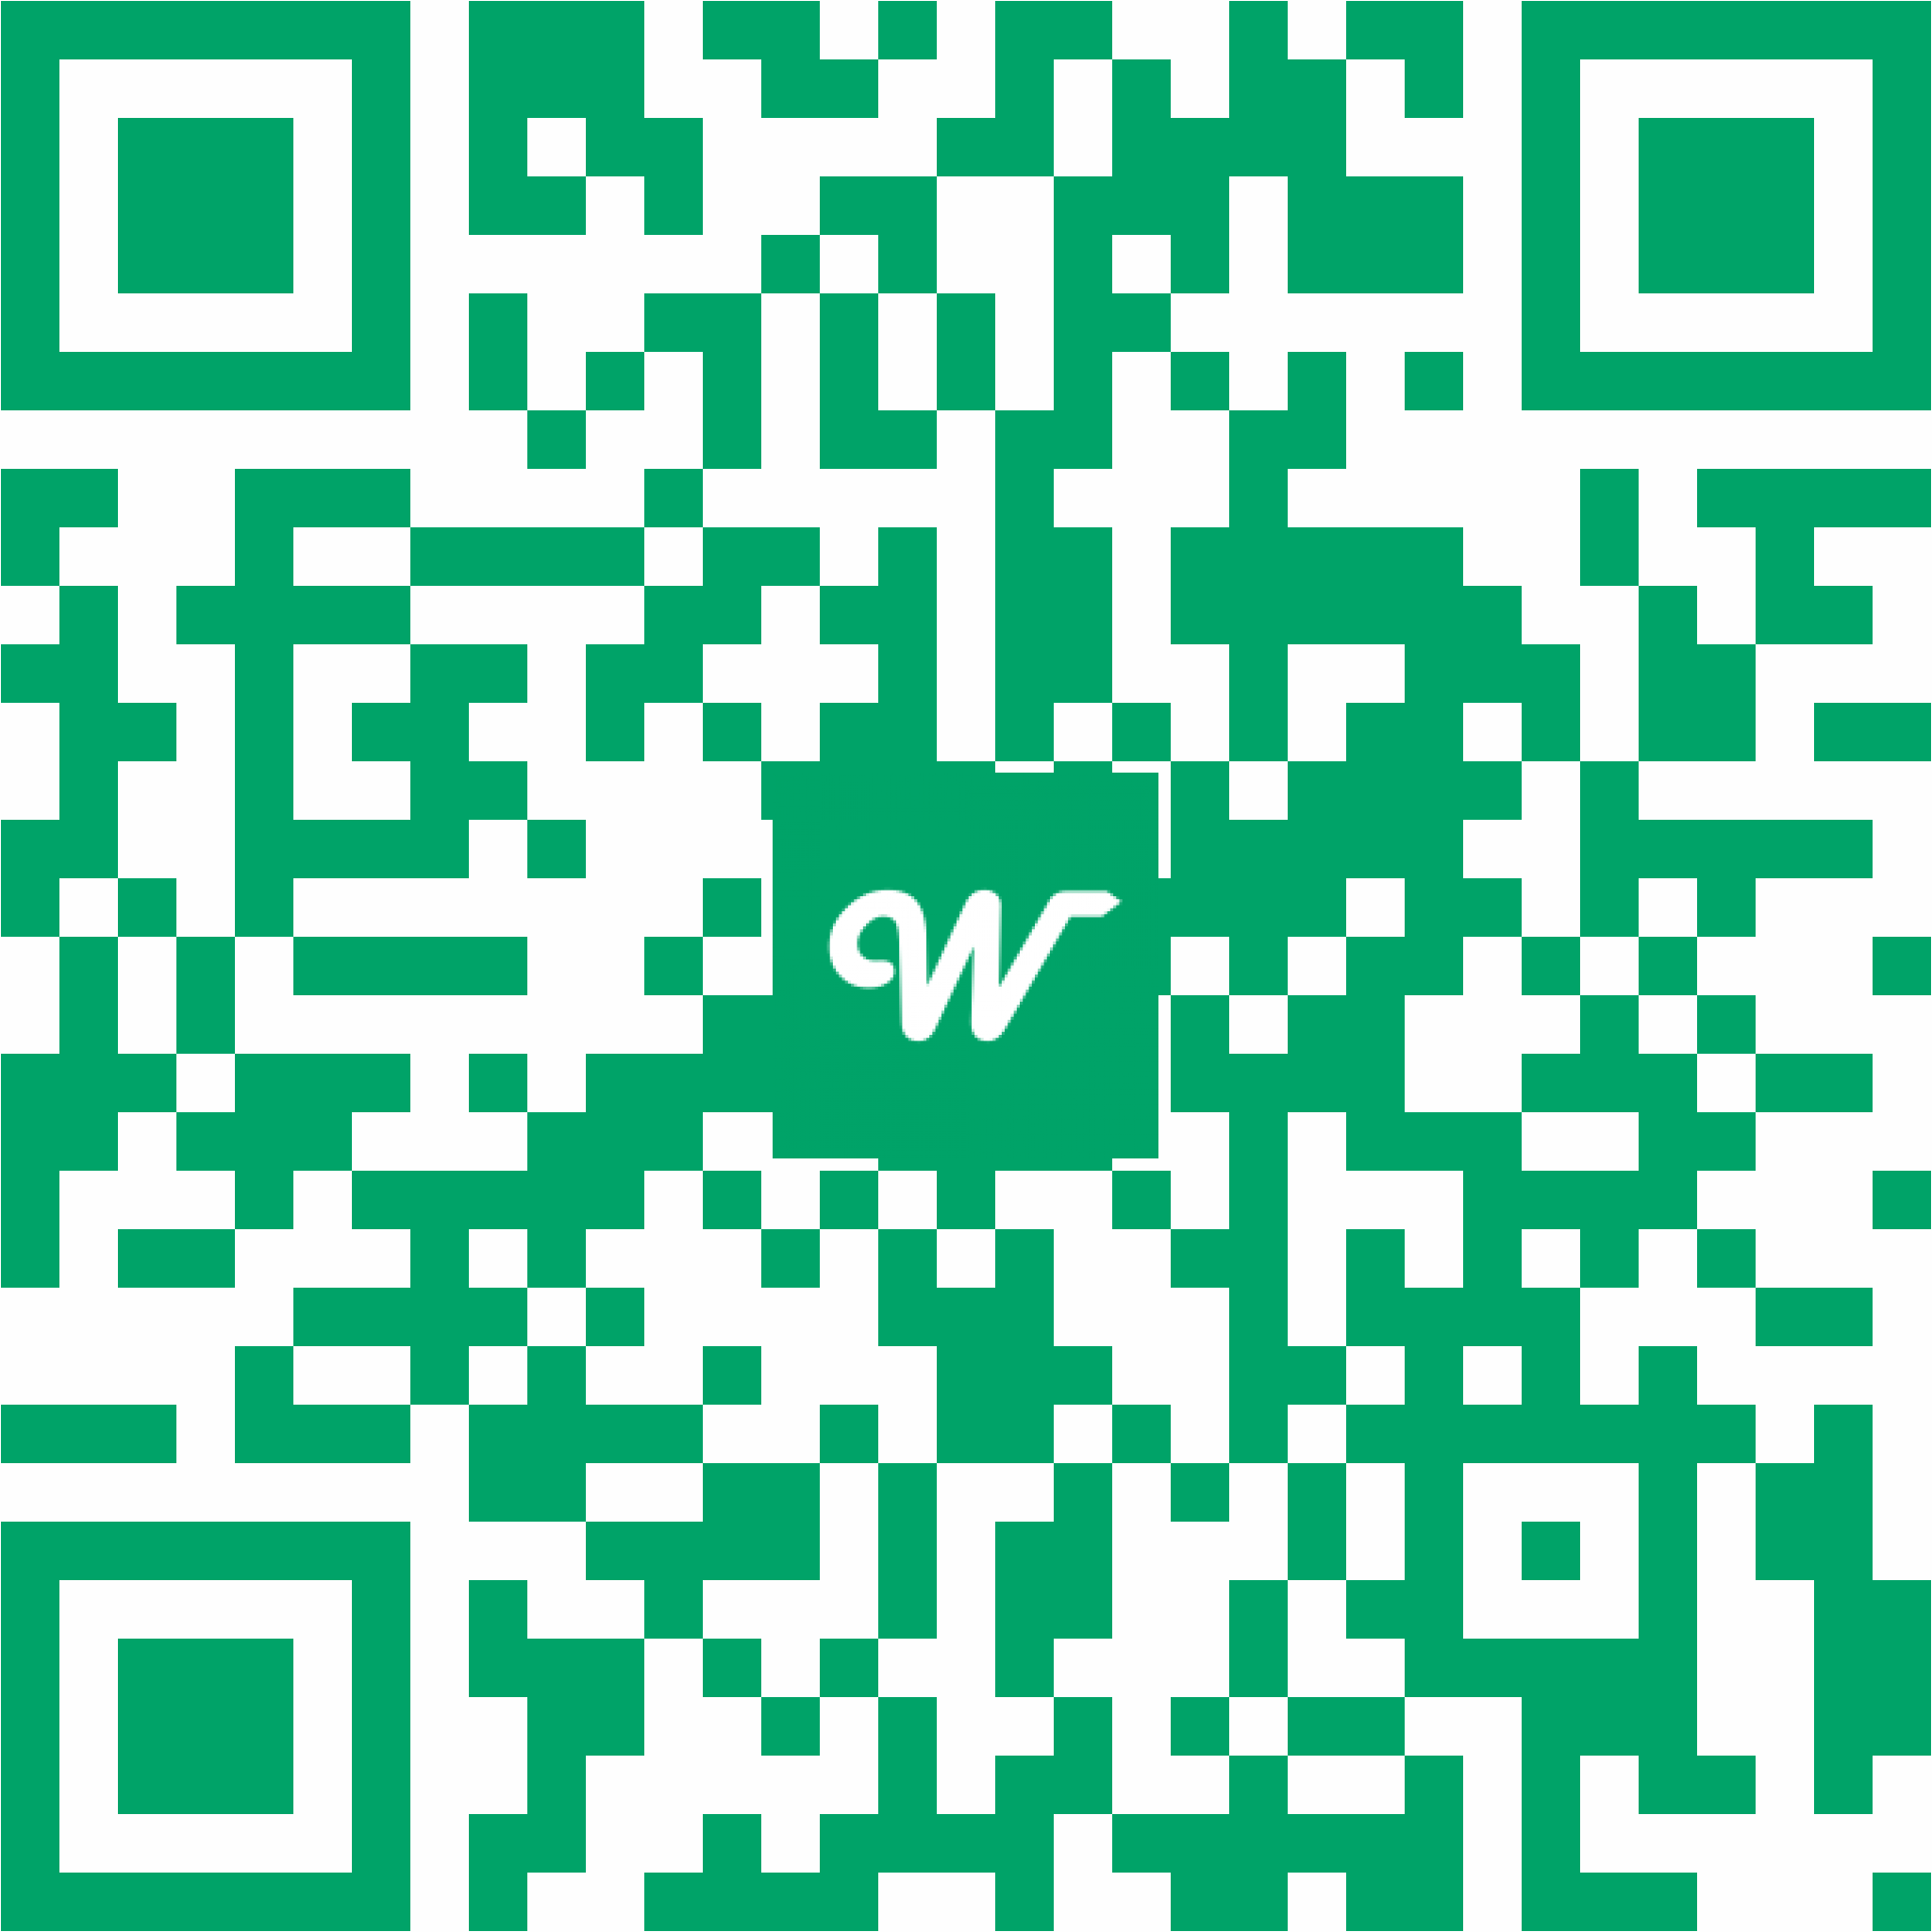 Printable QR code for Yeda Am St 21